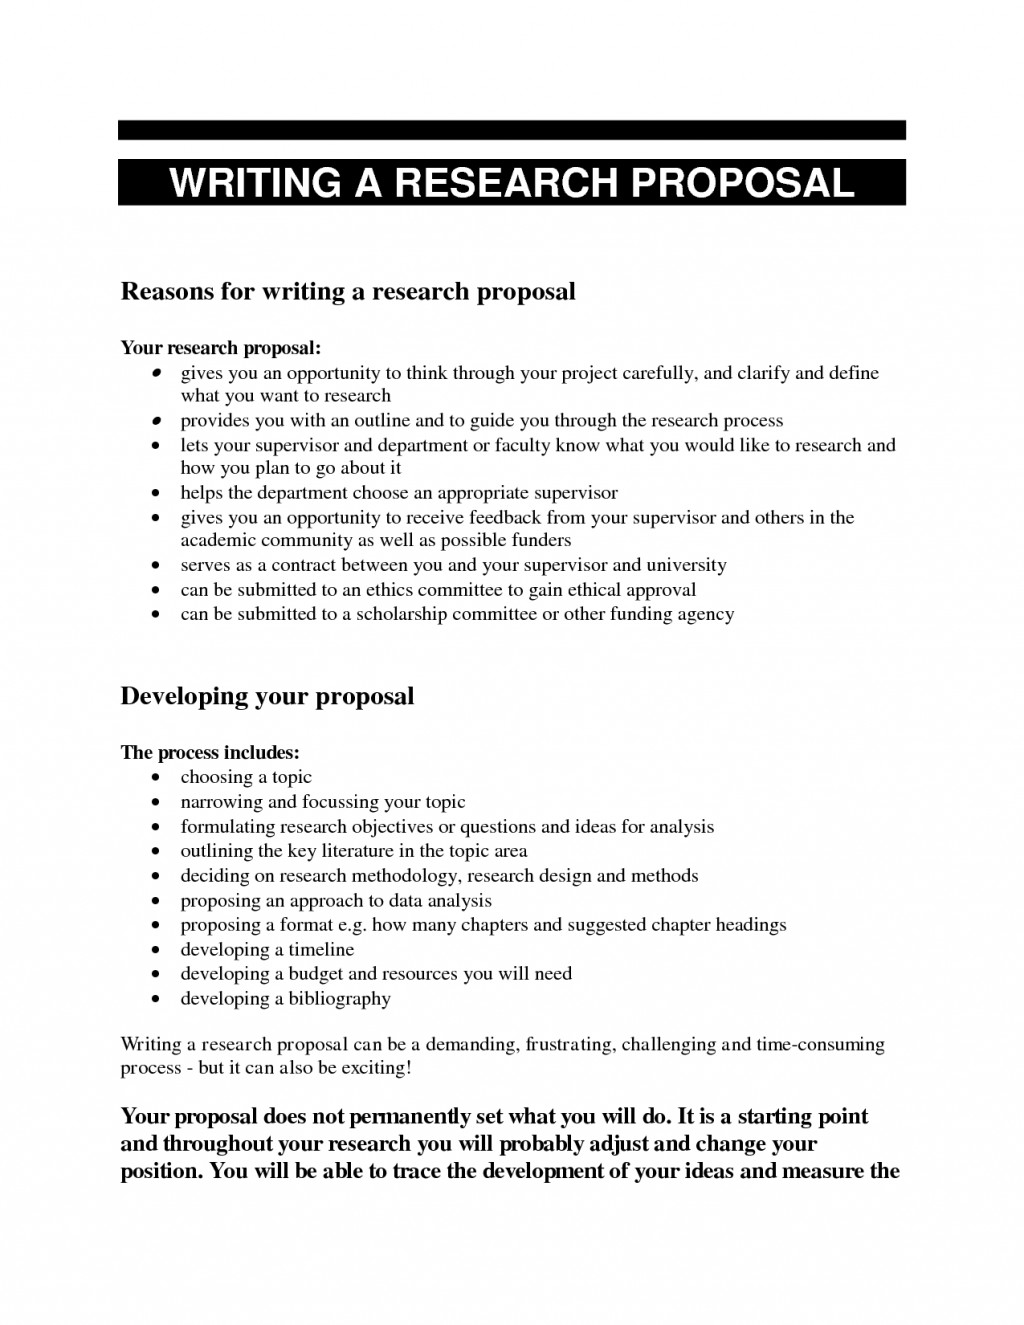 015 Research Proposal Essay Topics Questions Paper Example Thesis 5ykfu Pdf High School Turabian Chicago Apa Format Stunning Examples Free Solution Large